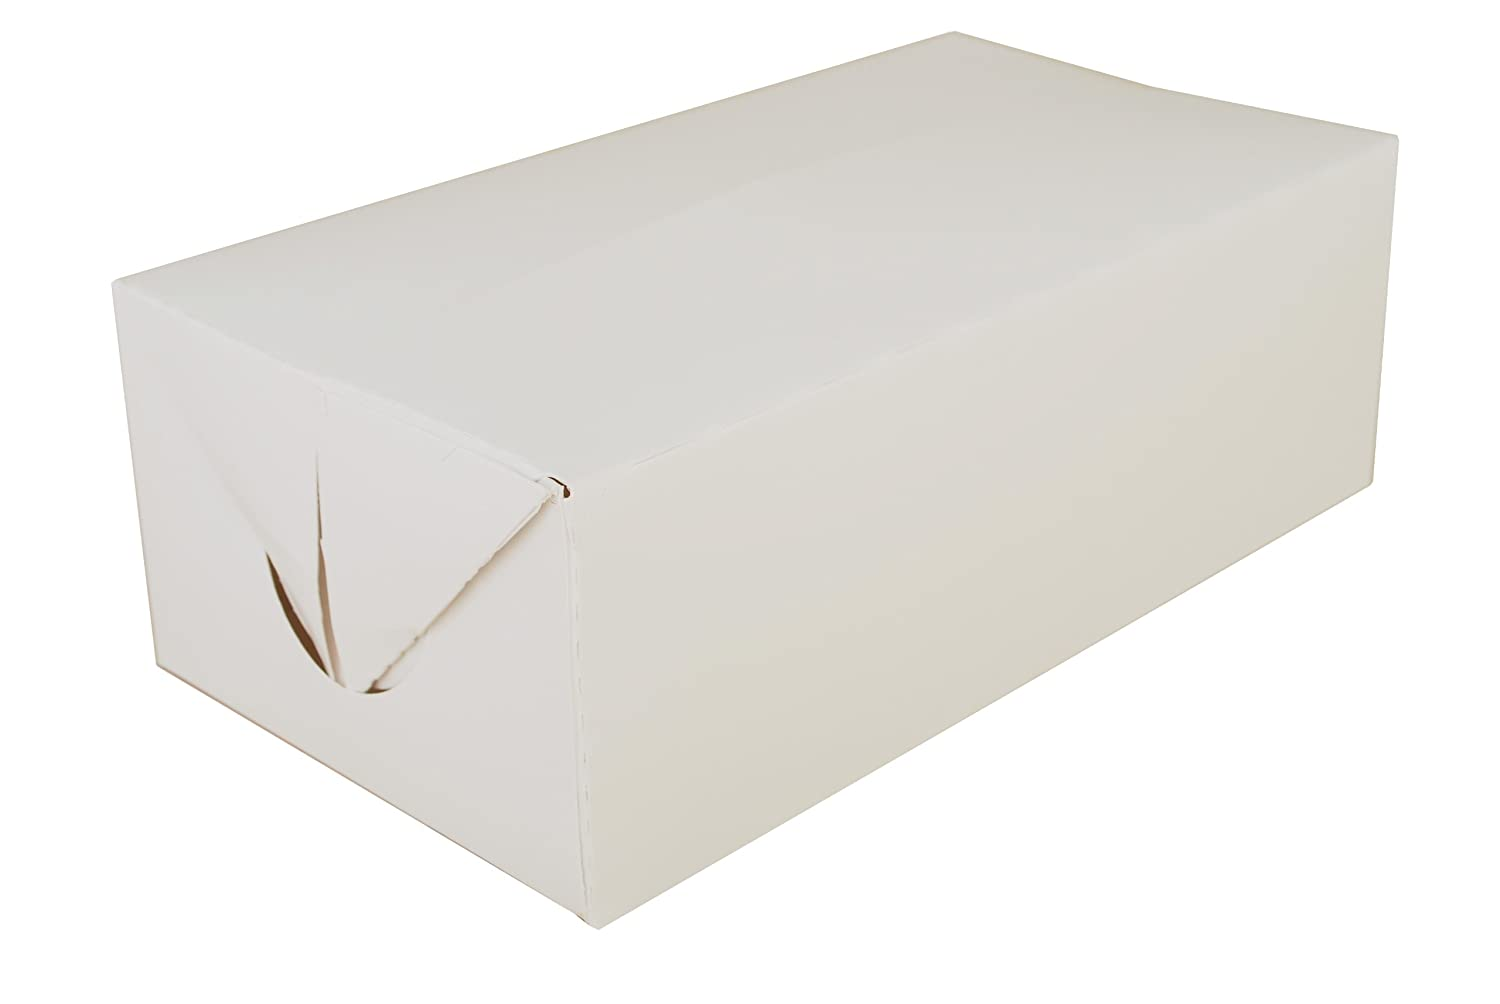 Southern Champion Tray 2730 Paperboard White Lunch Carry-Out Box, Fast Top, 8-7/8